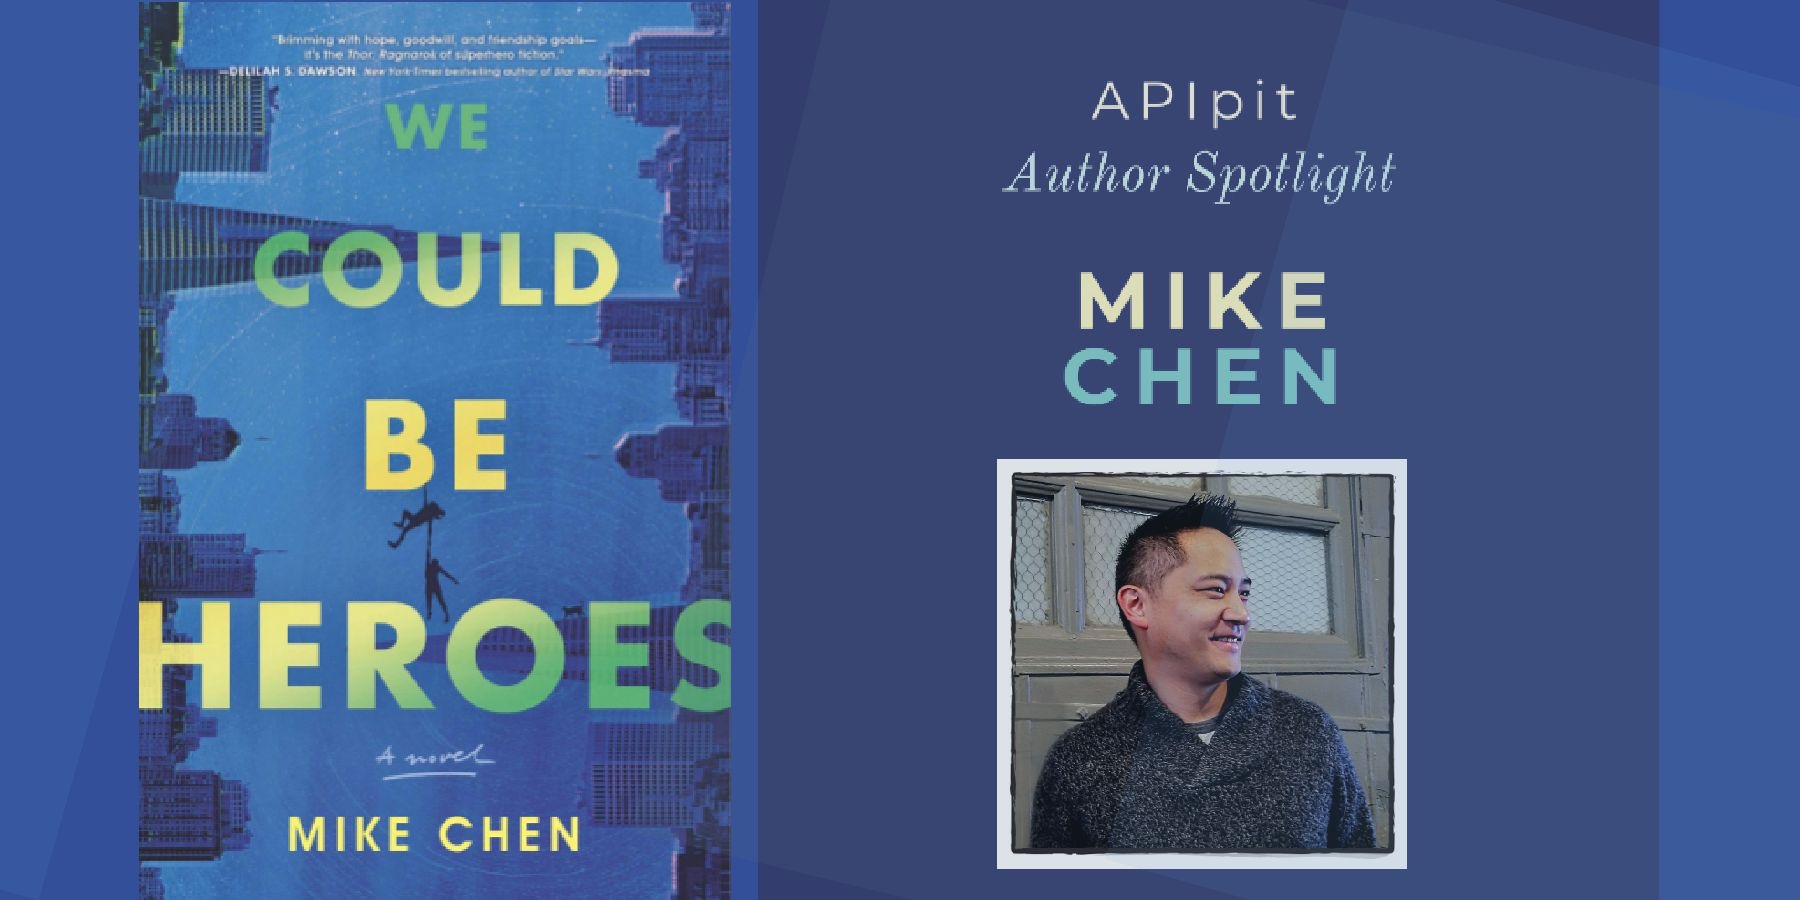 an image of a book WE COULD BE HEROES by Mike Chen and a bust photo of the author; the profile of a light skinned Asian man with short spiked hair buzzed on the side.